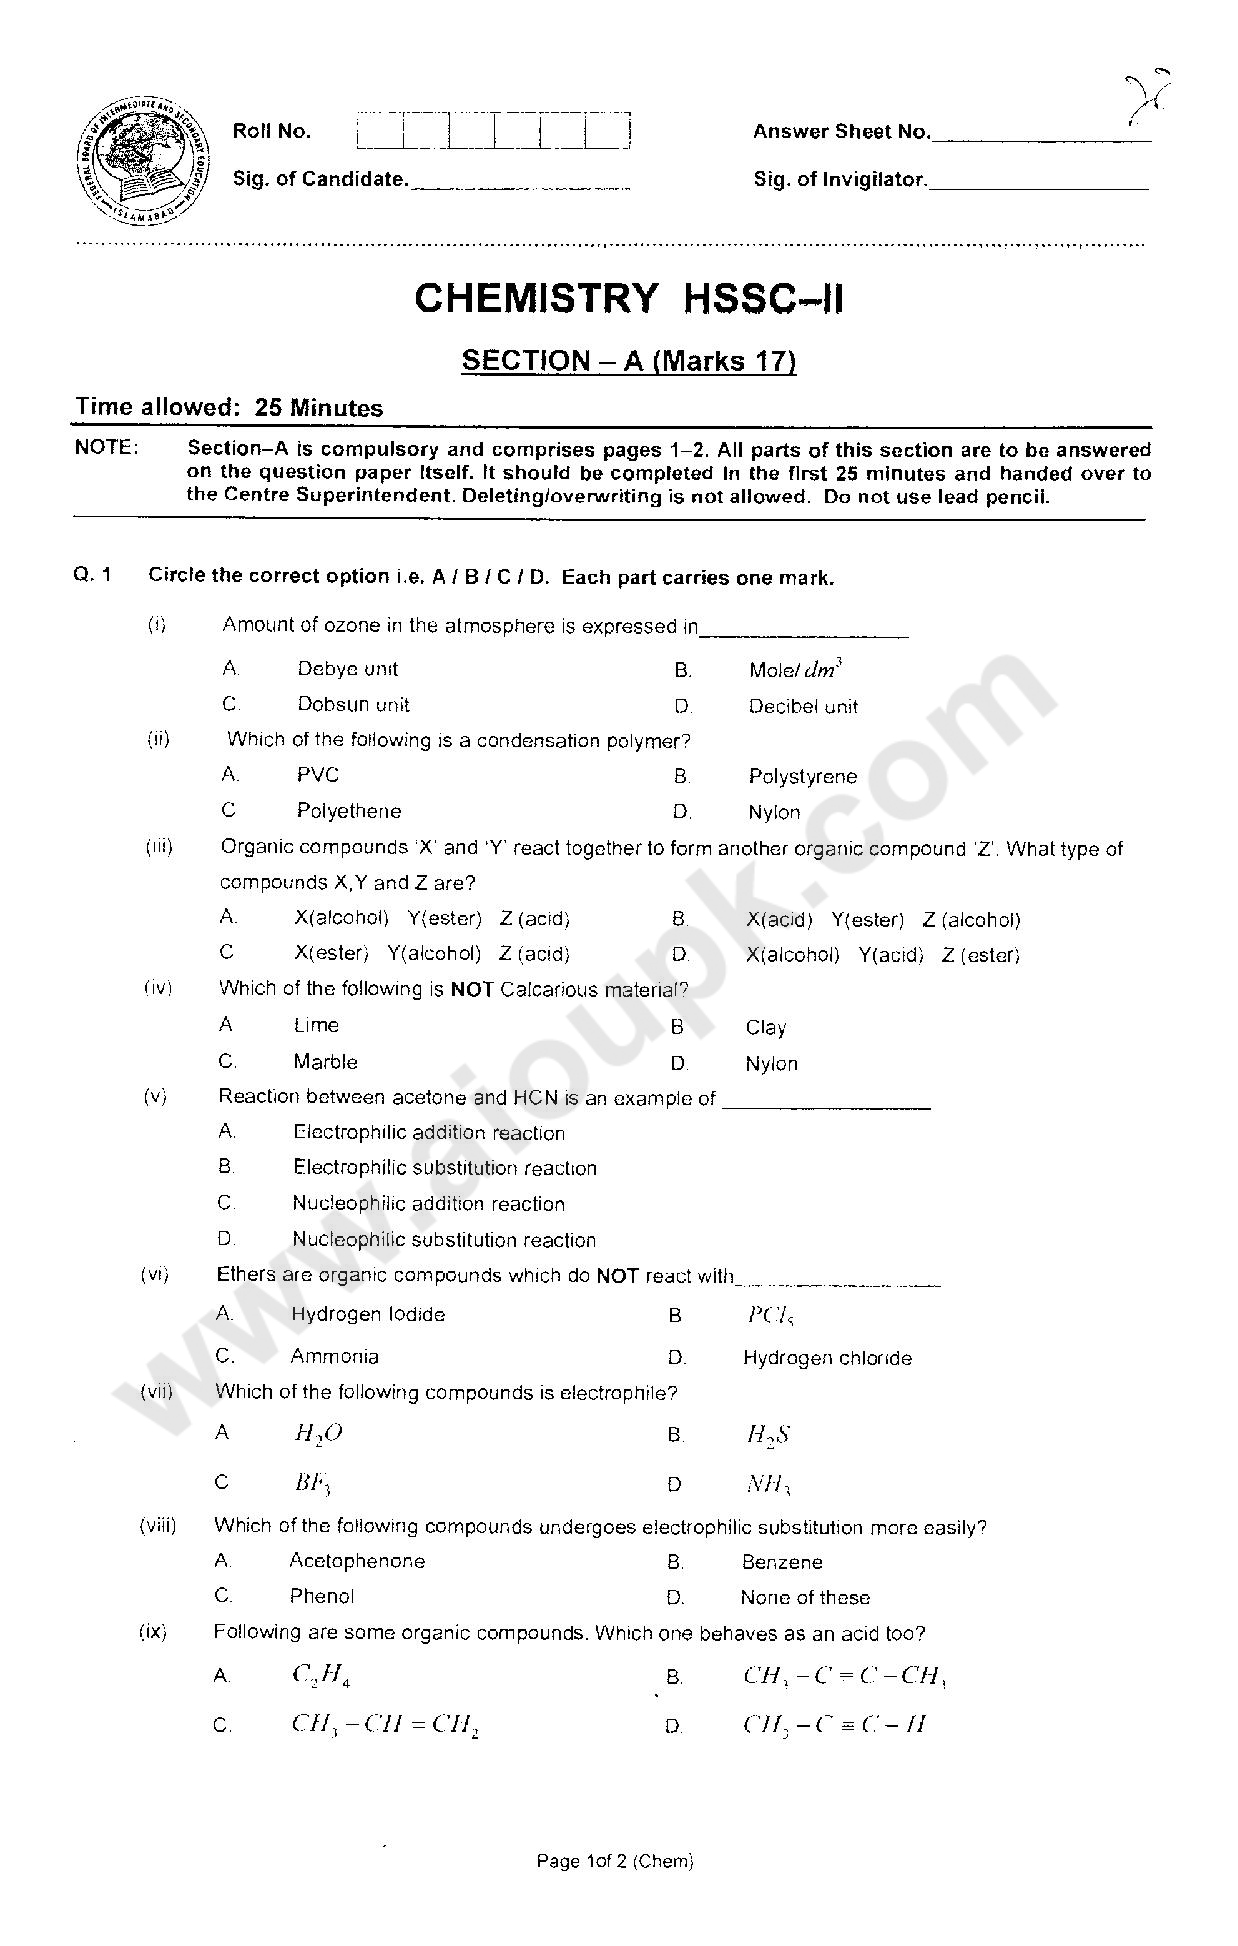 Supplementary paper of chemistry for 2nd year students – 2014